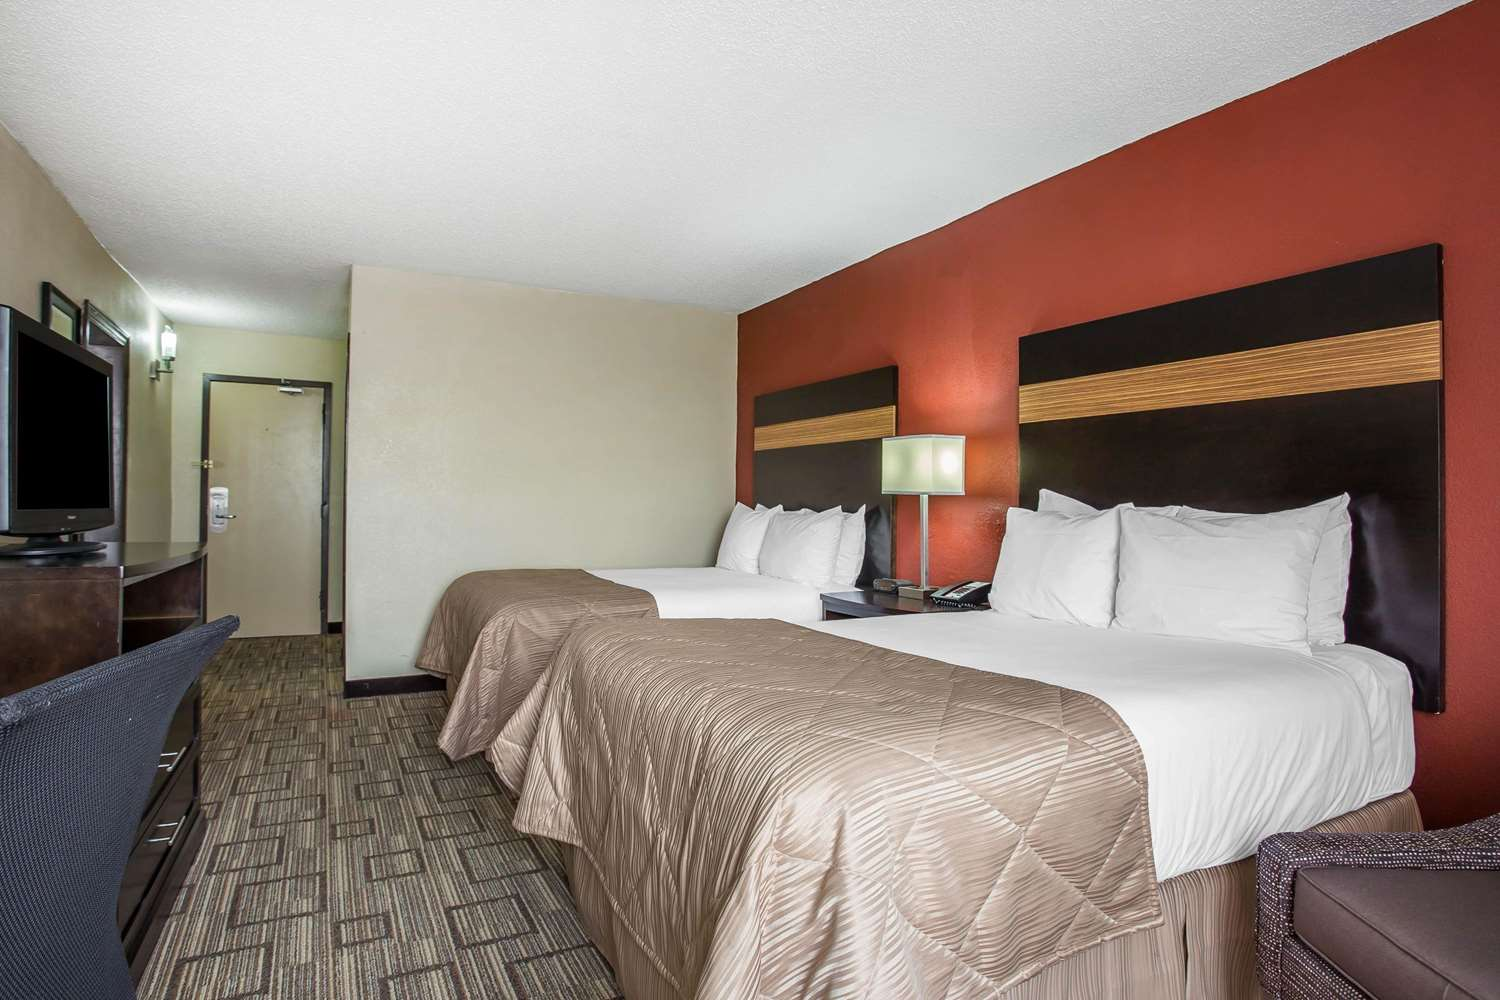 clarion hotel fort mill sc see discounts. Black Bedroom Furniture Sets. Home Design Ideas